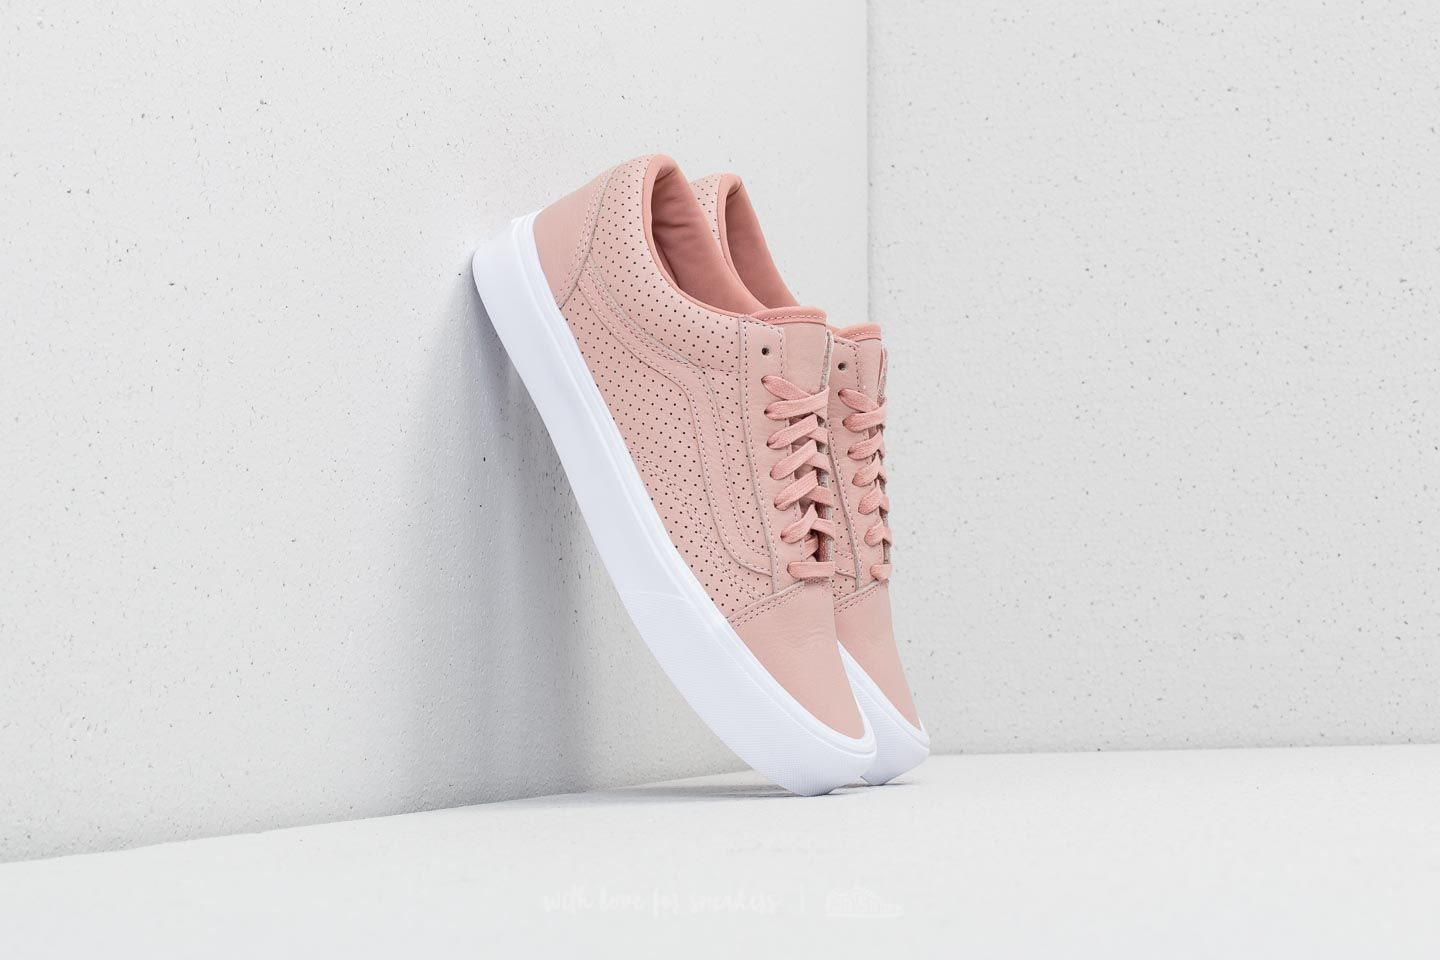 Vans Old Skool Lite (Perf) Blush Pink True White | Footshop